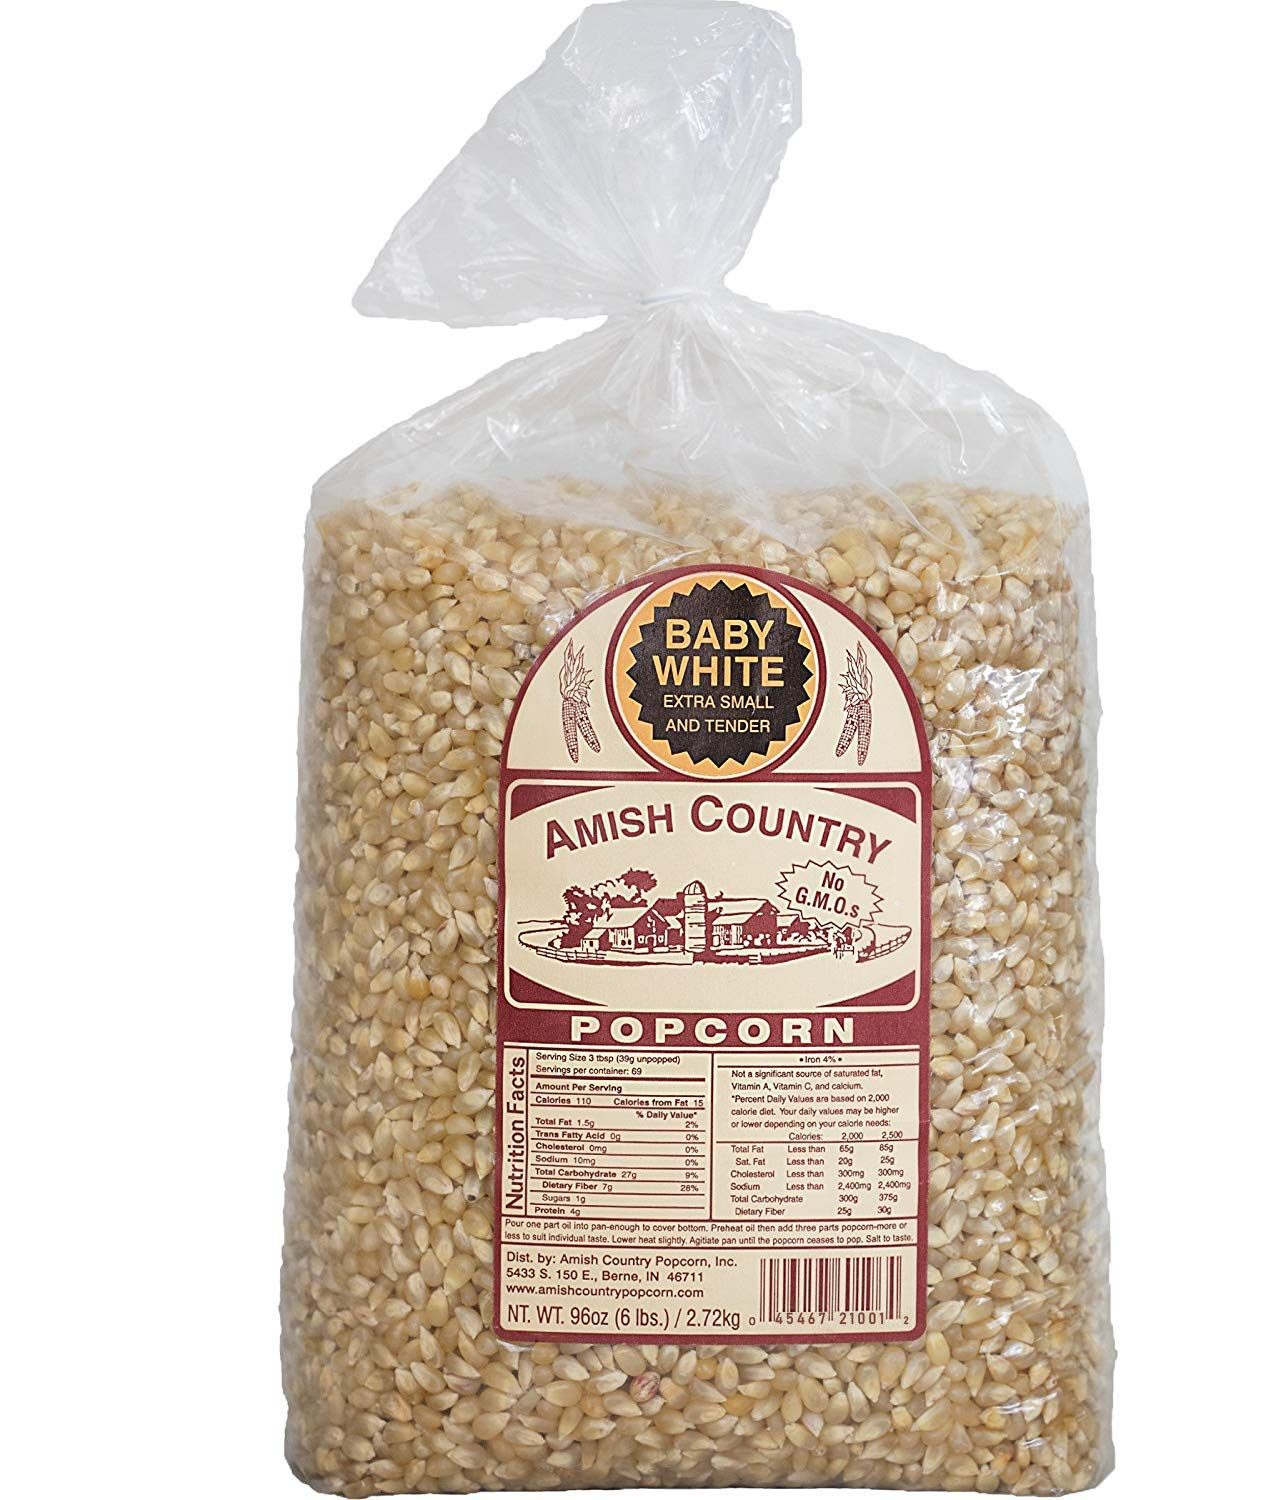 Amish Country Popcorn Baby White Extra Small And Tender Popcorn Old Fashioned And Non